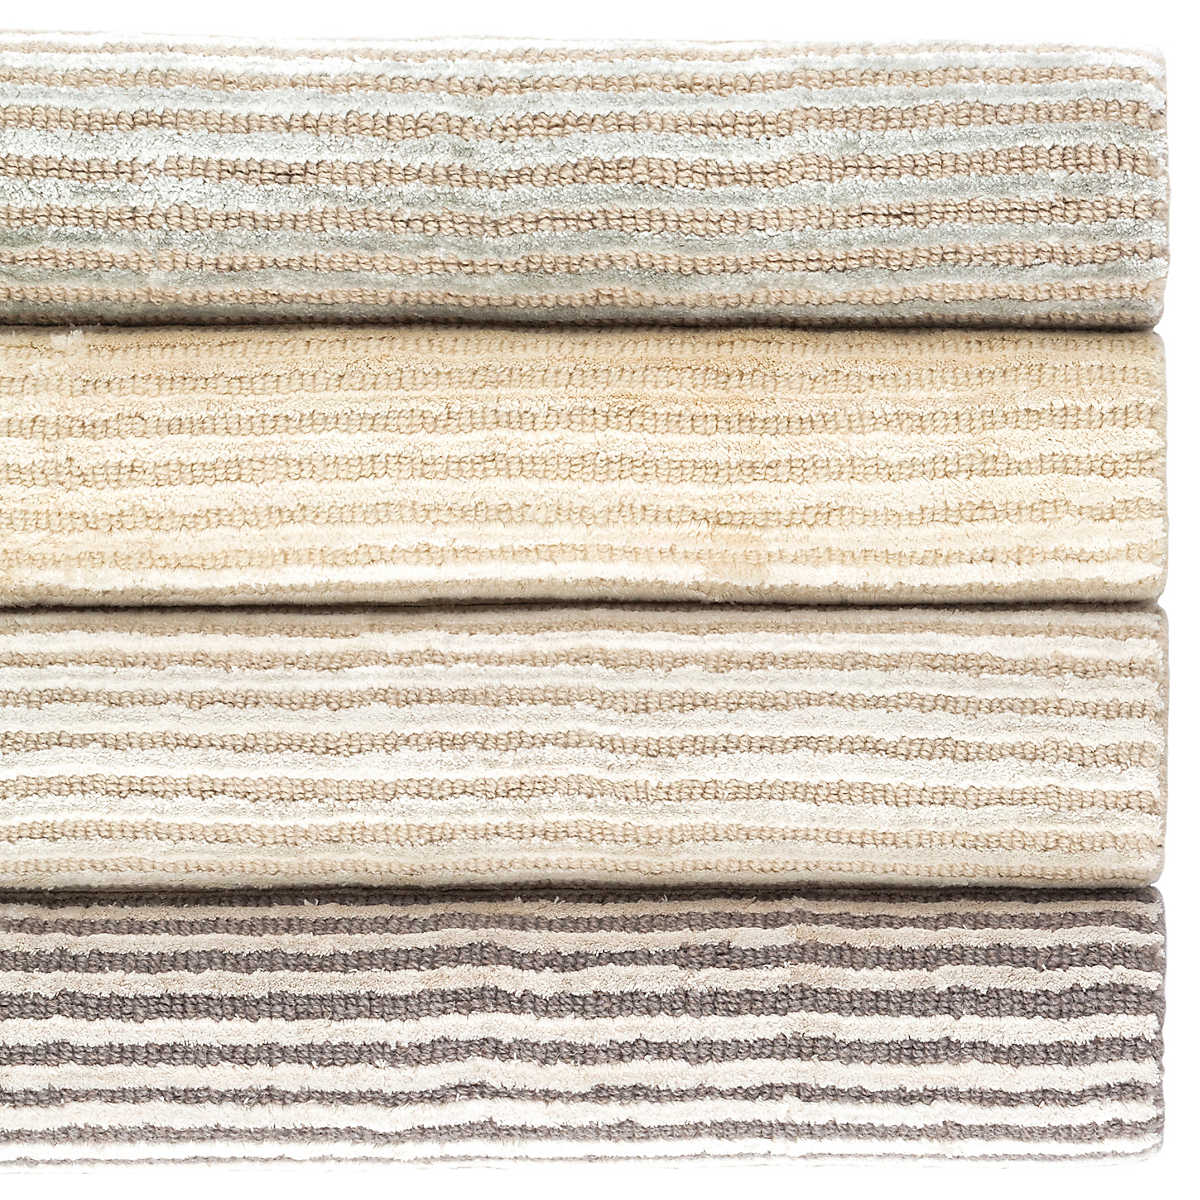 Cut Stripe Grey Hand Knotted Viscose Wool Rug The Outlet